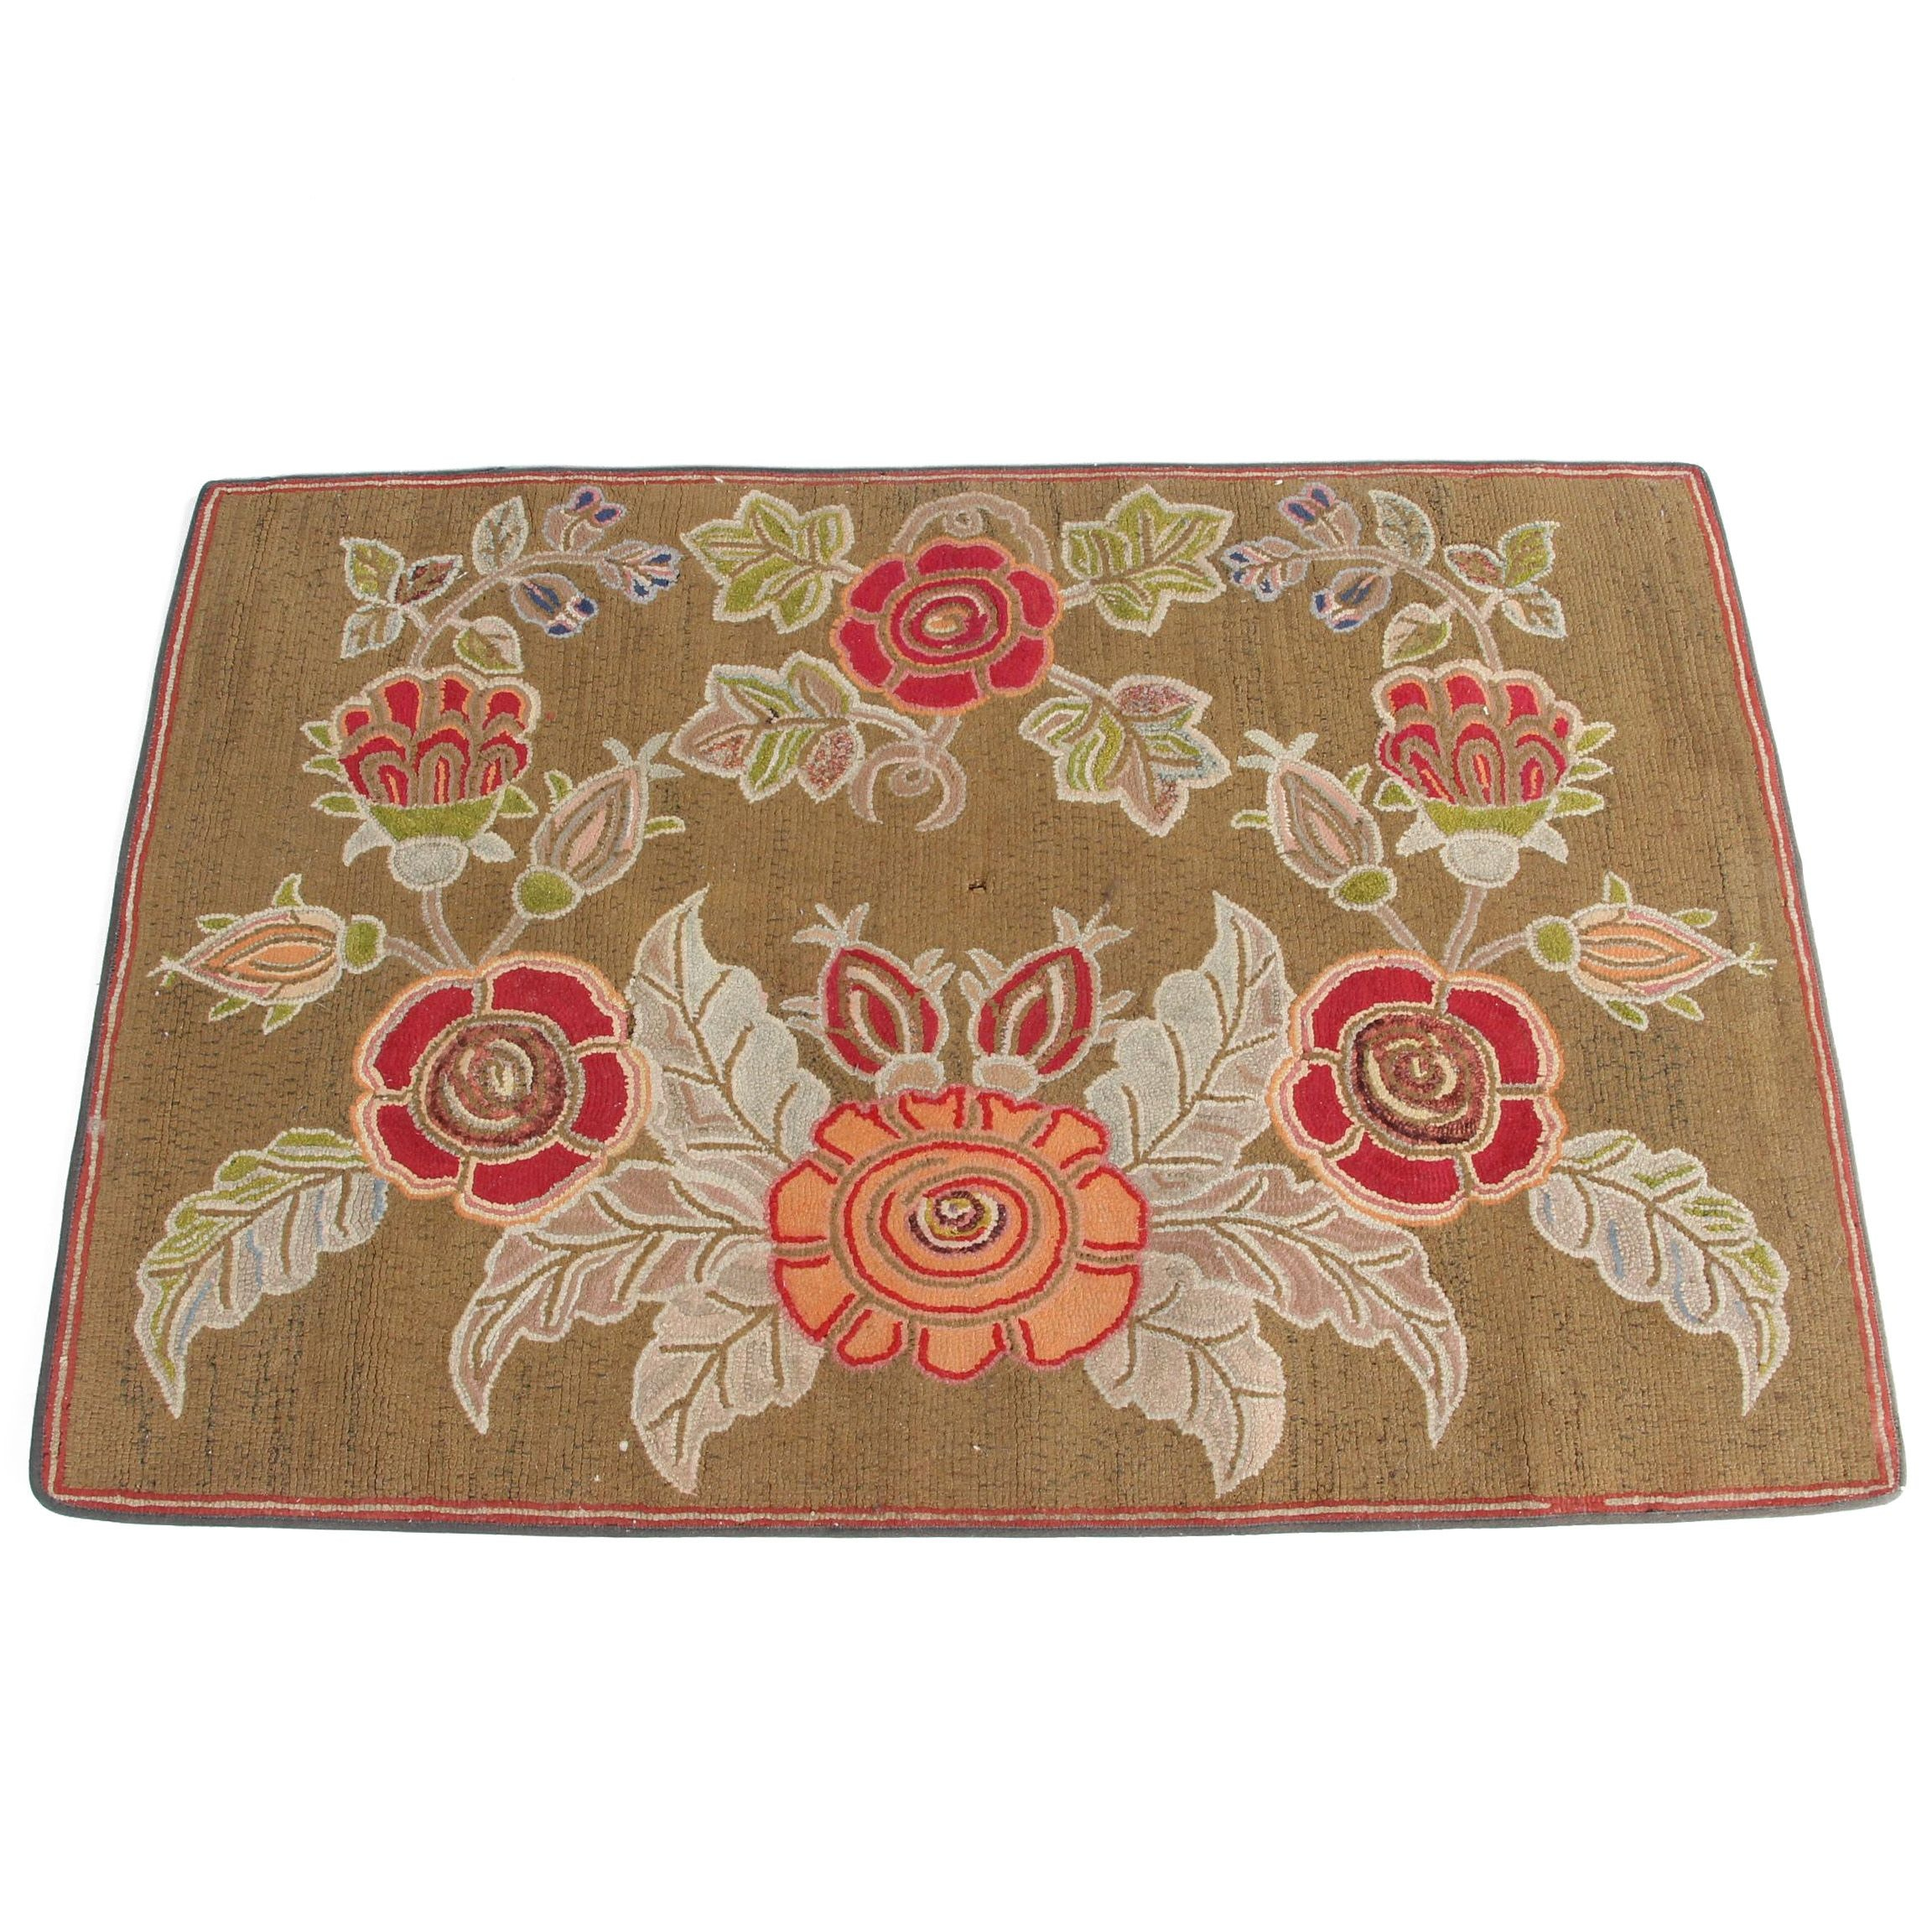 Vintage Hand-Hooked Arts and Crafts Style Floral Wool Accent Rug